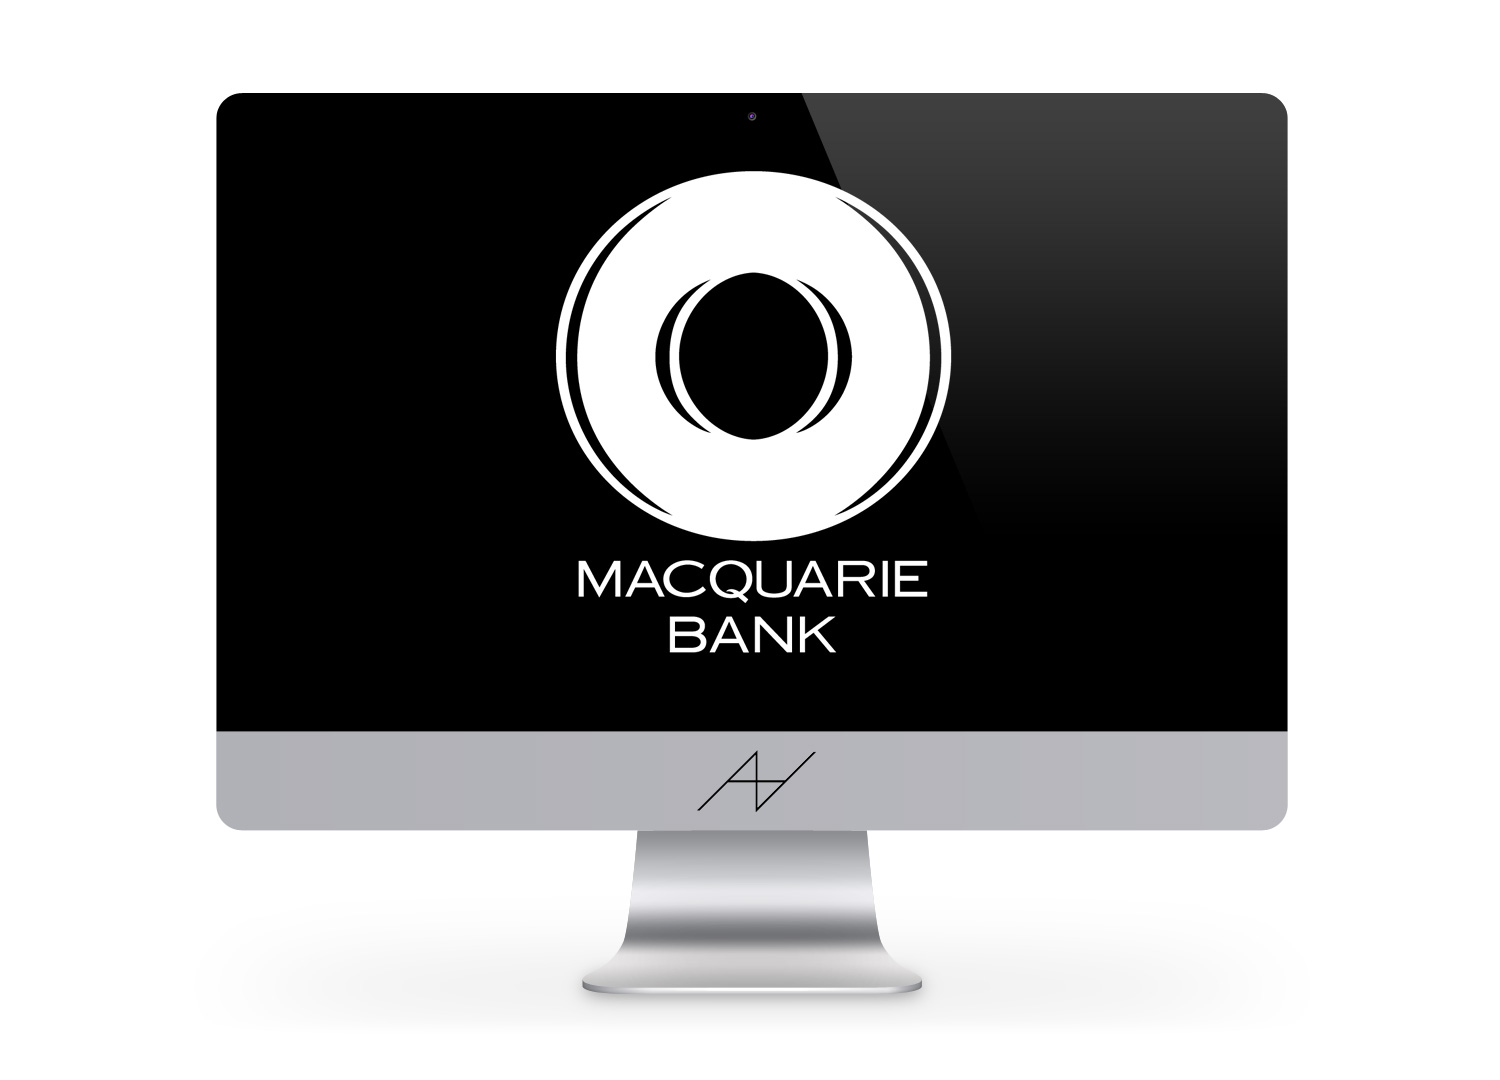 macquarie4_05.jpg